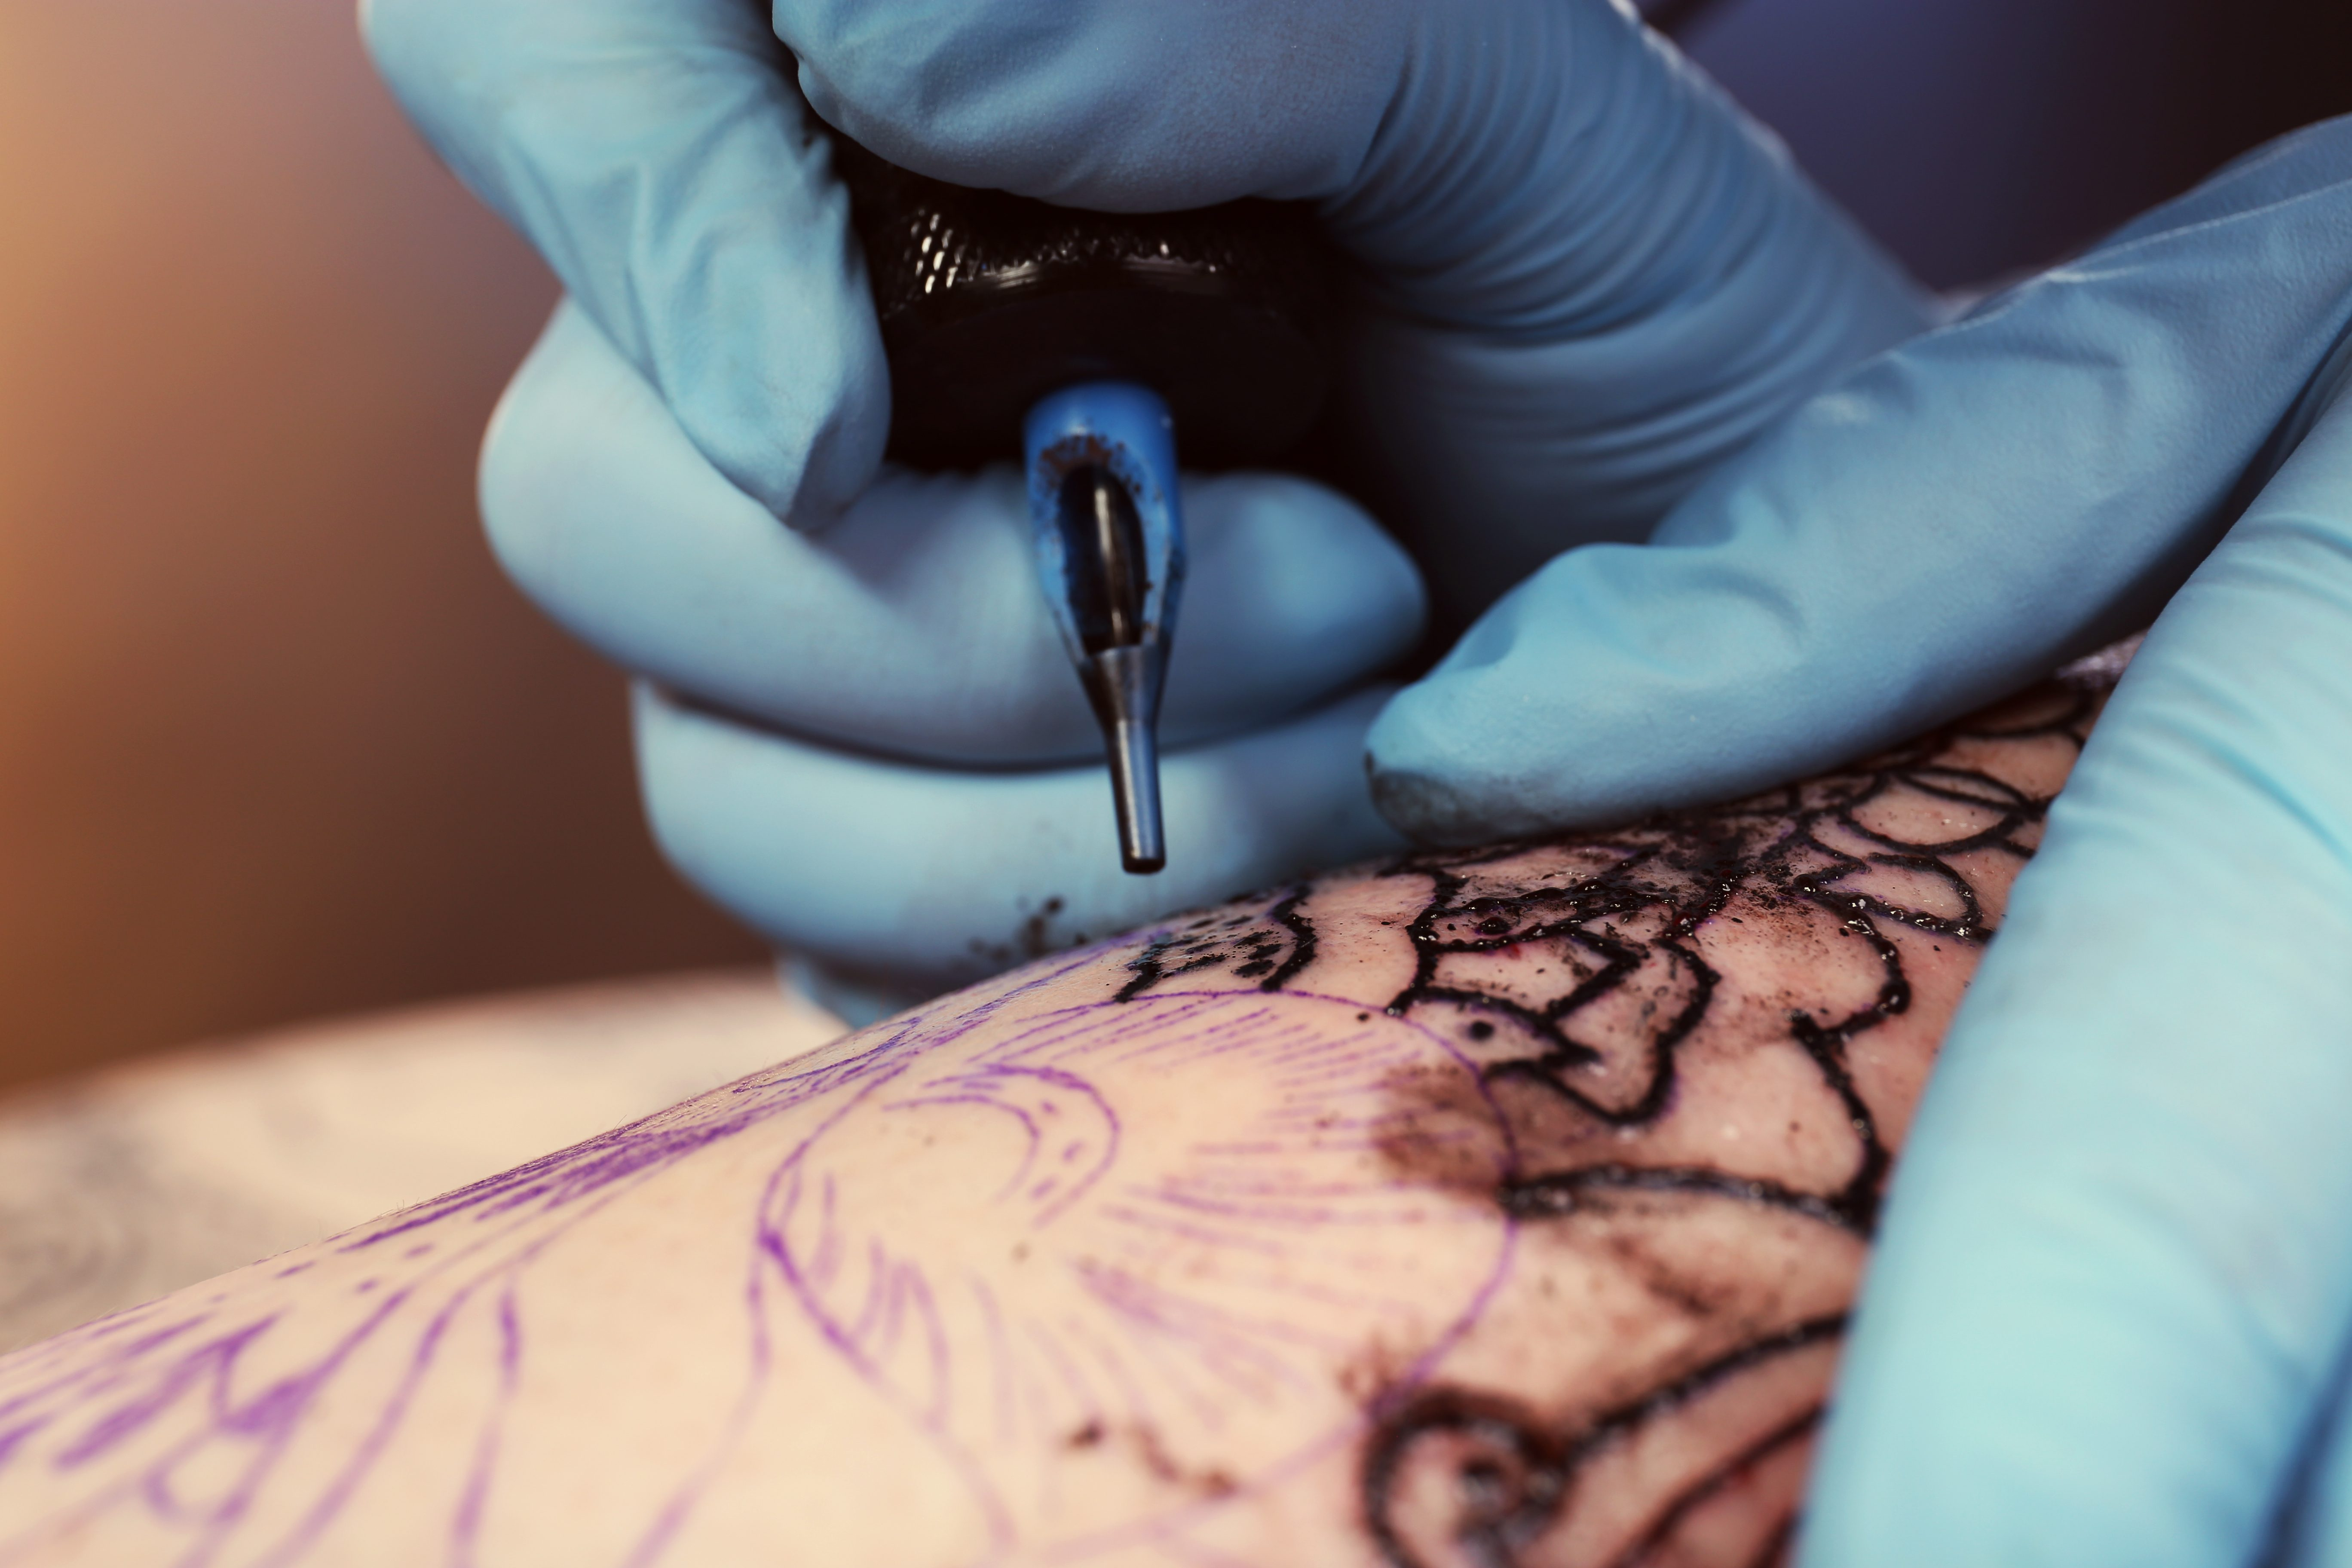 The Most And Least Painful Places On Your Body To Tattoo The Healthy